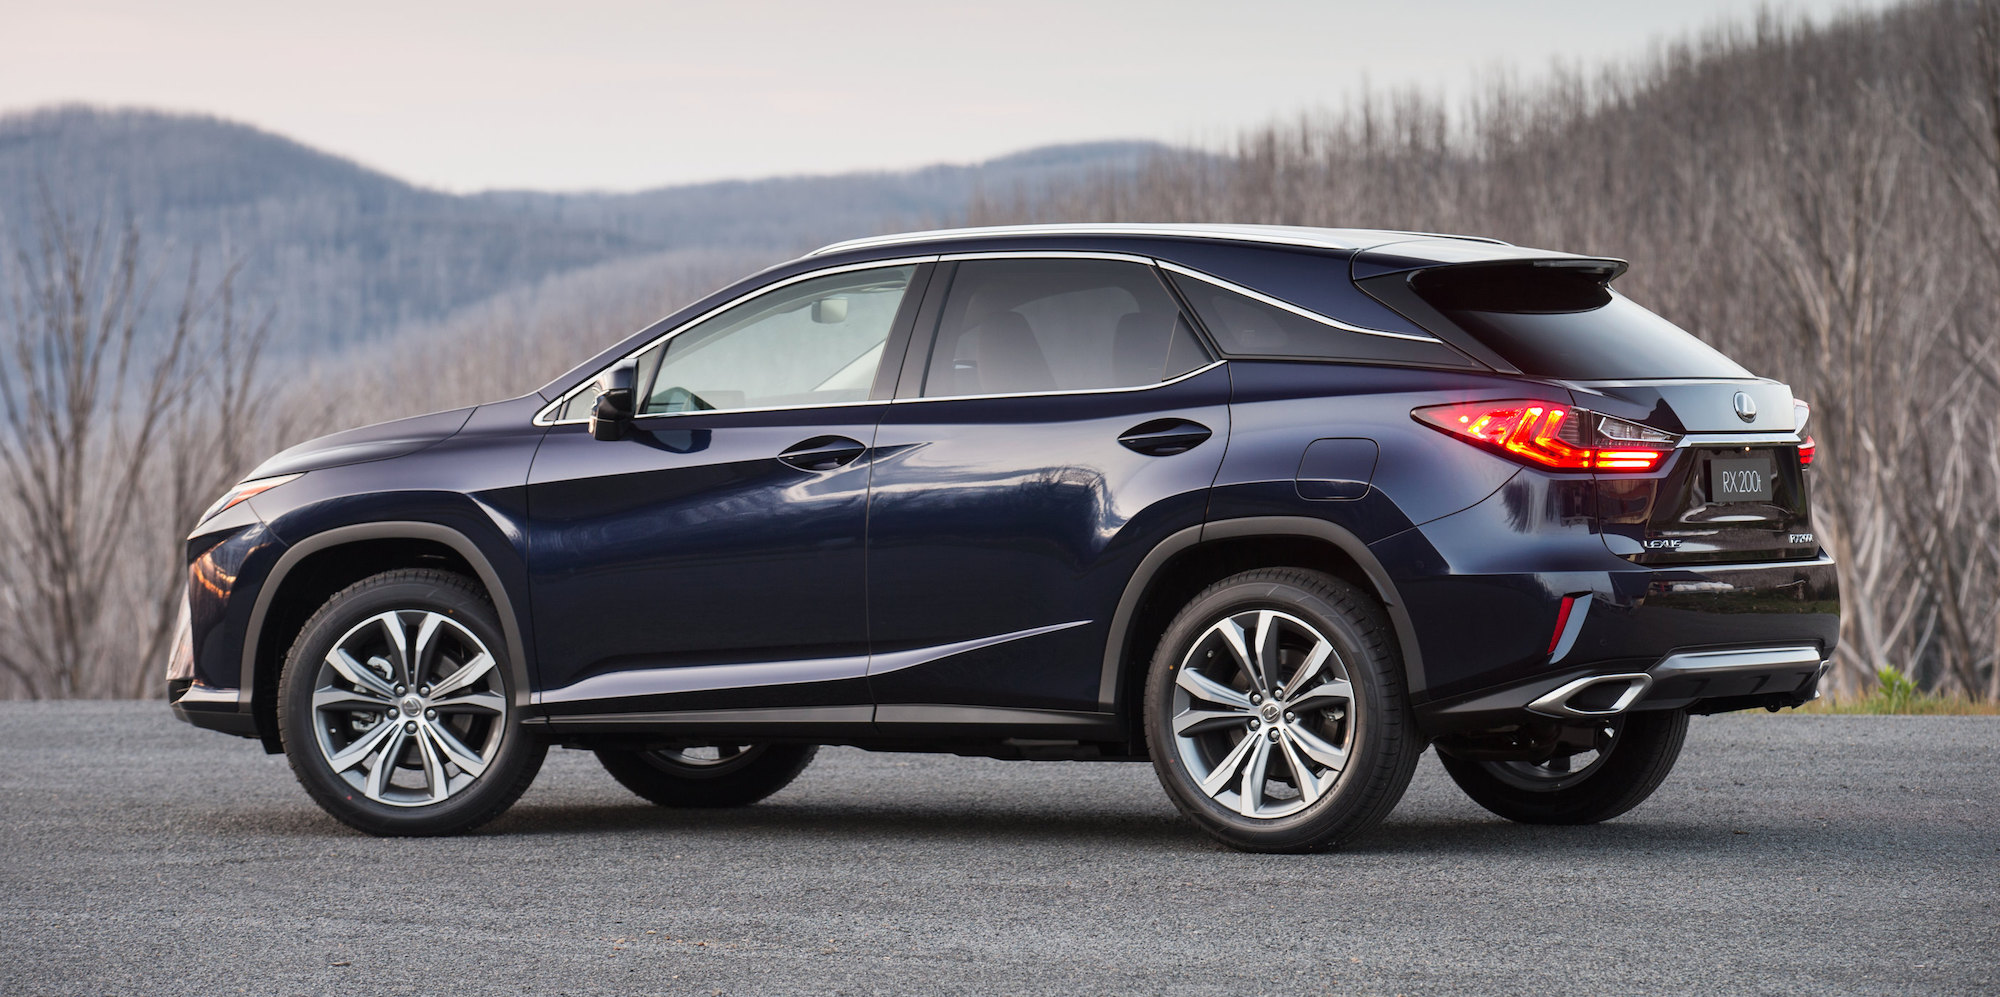 lexus rx seven seater on local wish list along with rx200t f sport photos 1 of 3. Black Bedroom Furniture Sets. Home Design Ideas